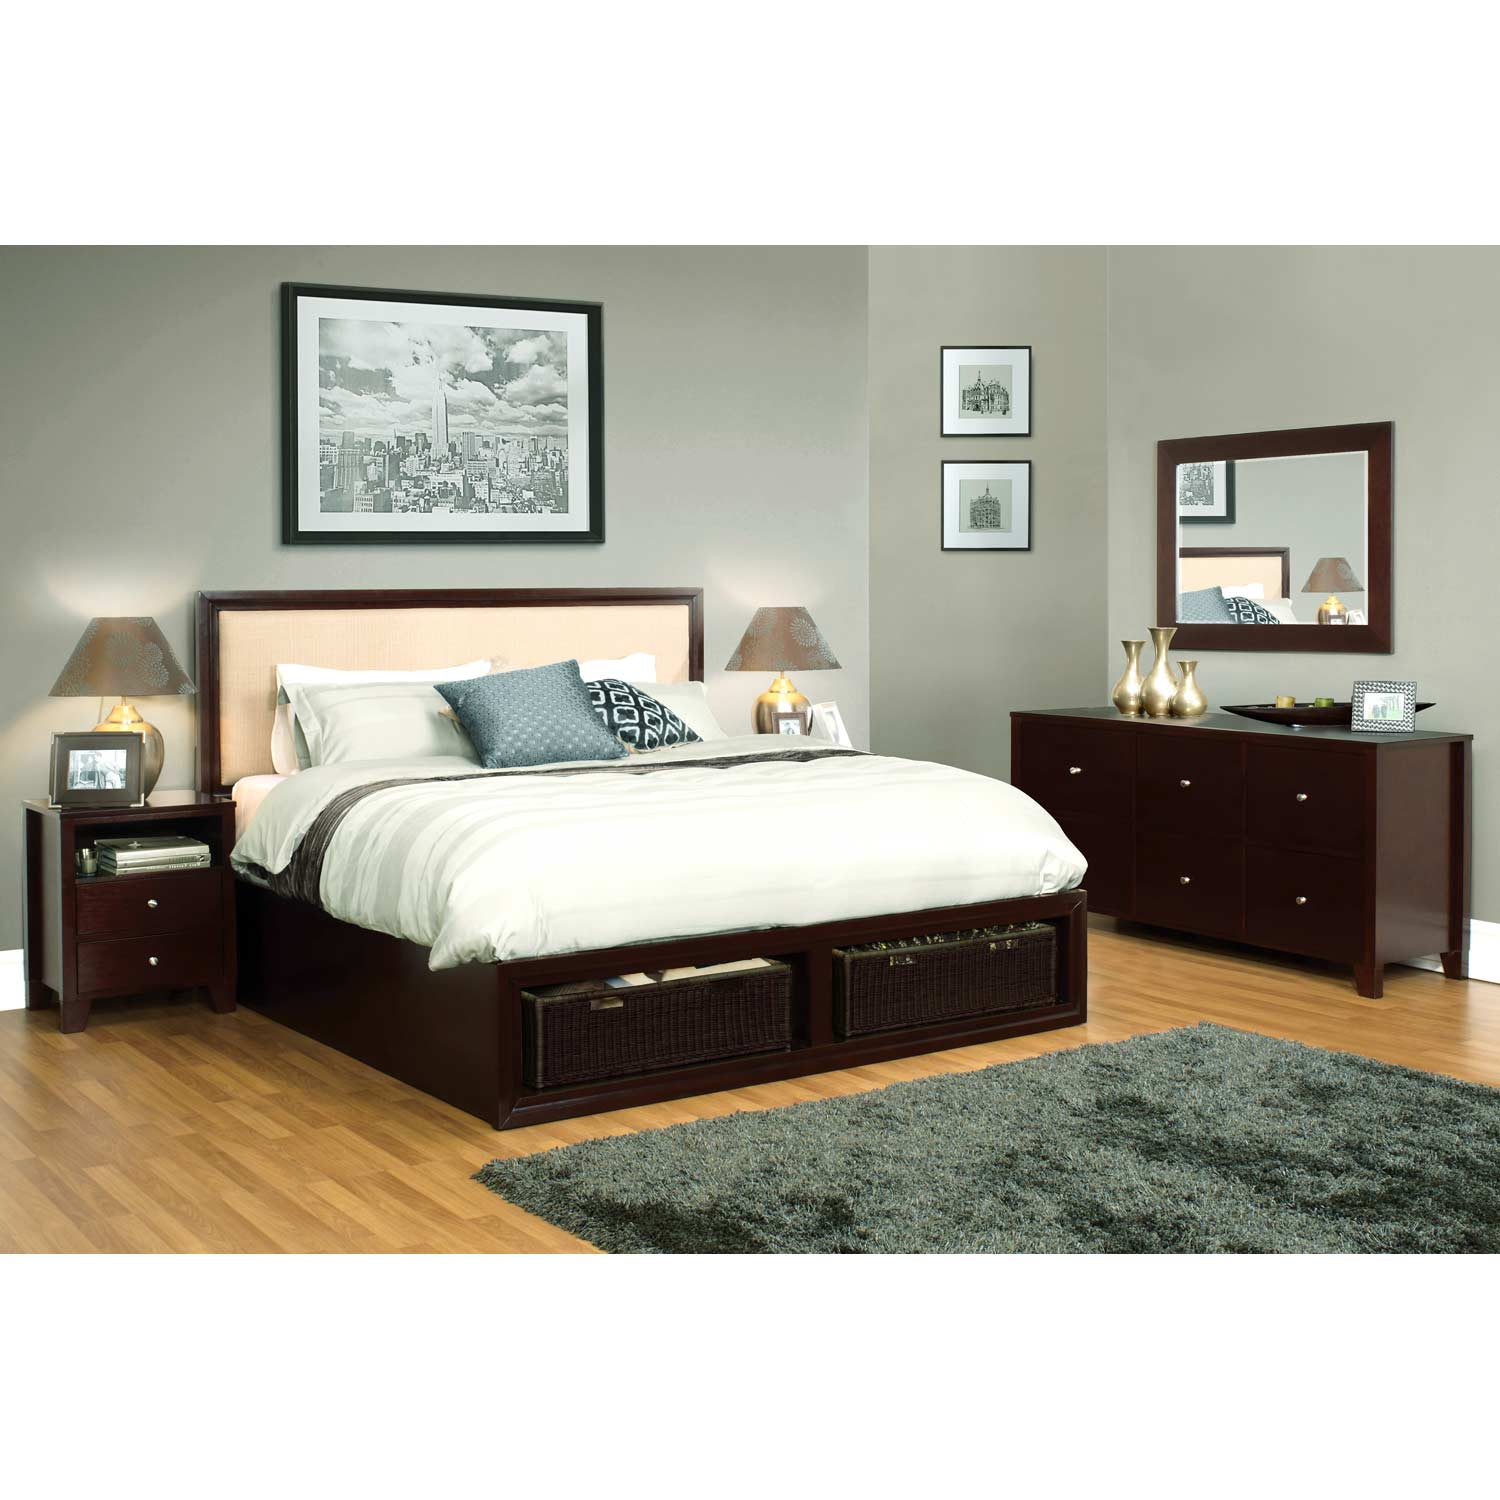 Gracie 5 Piece Bedroom Set - Upholstered Headboard, Cappuccino - LSS-GRA-5PC-BED